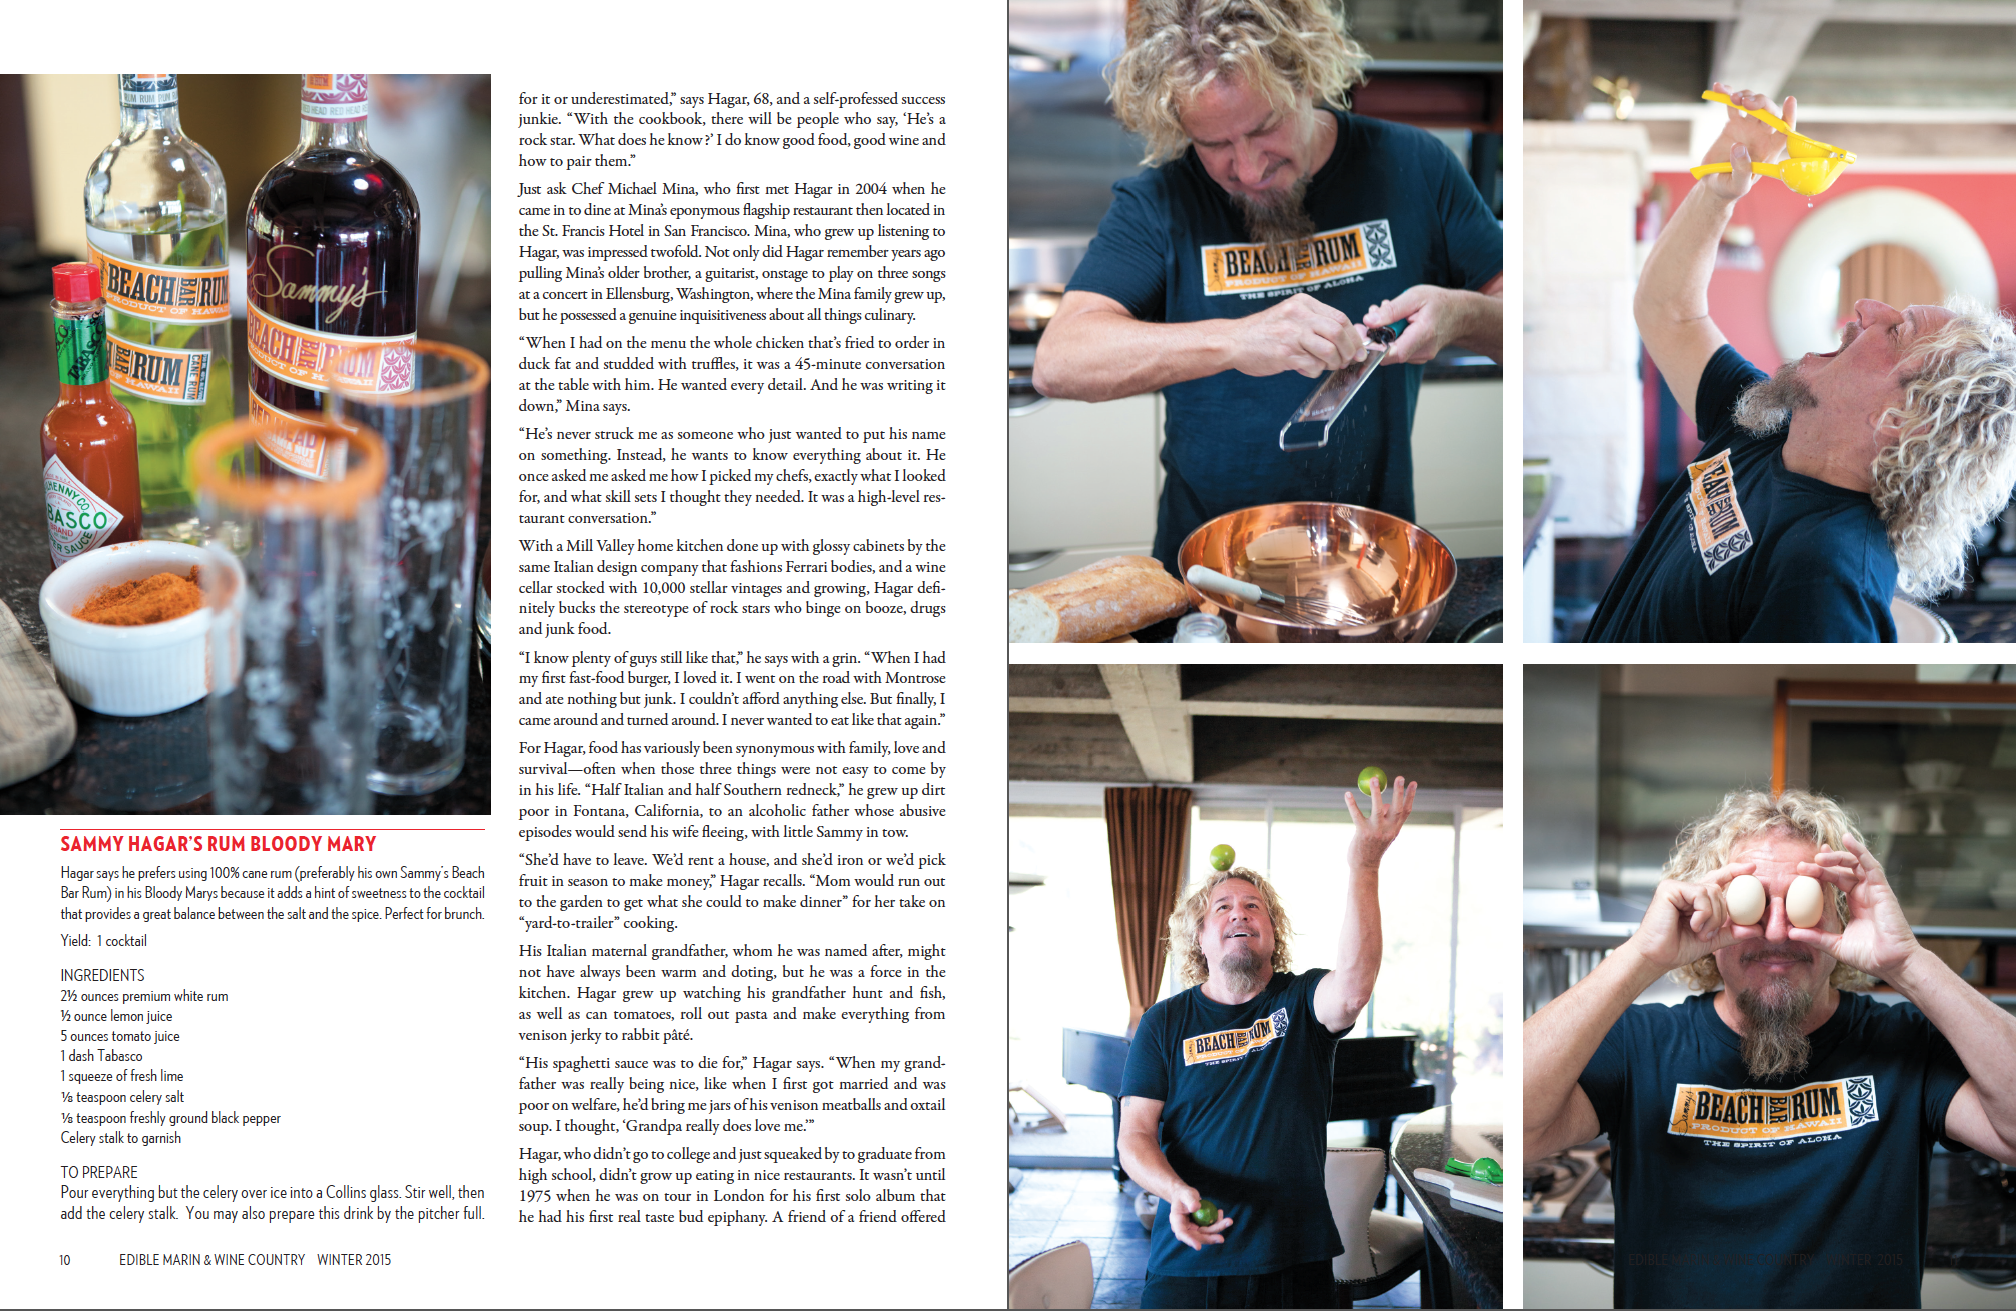 Sammy Hagar (p.2 of 3)